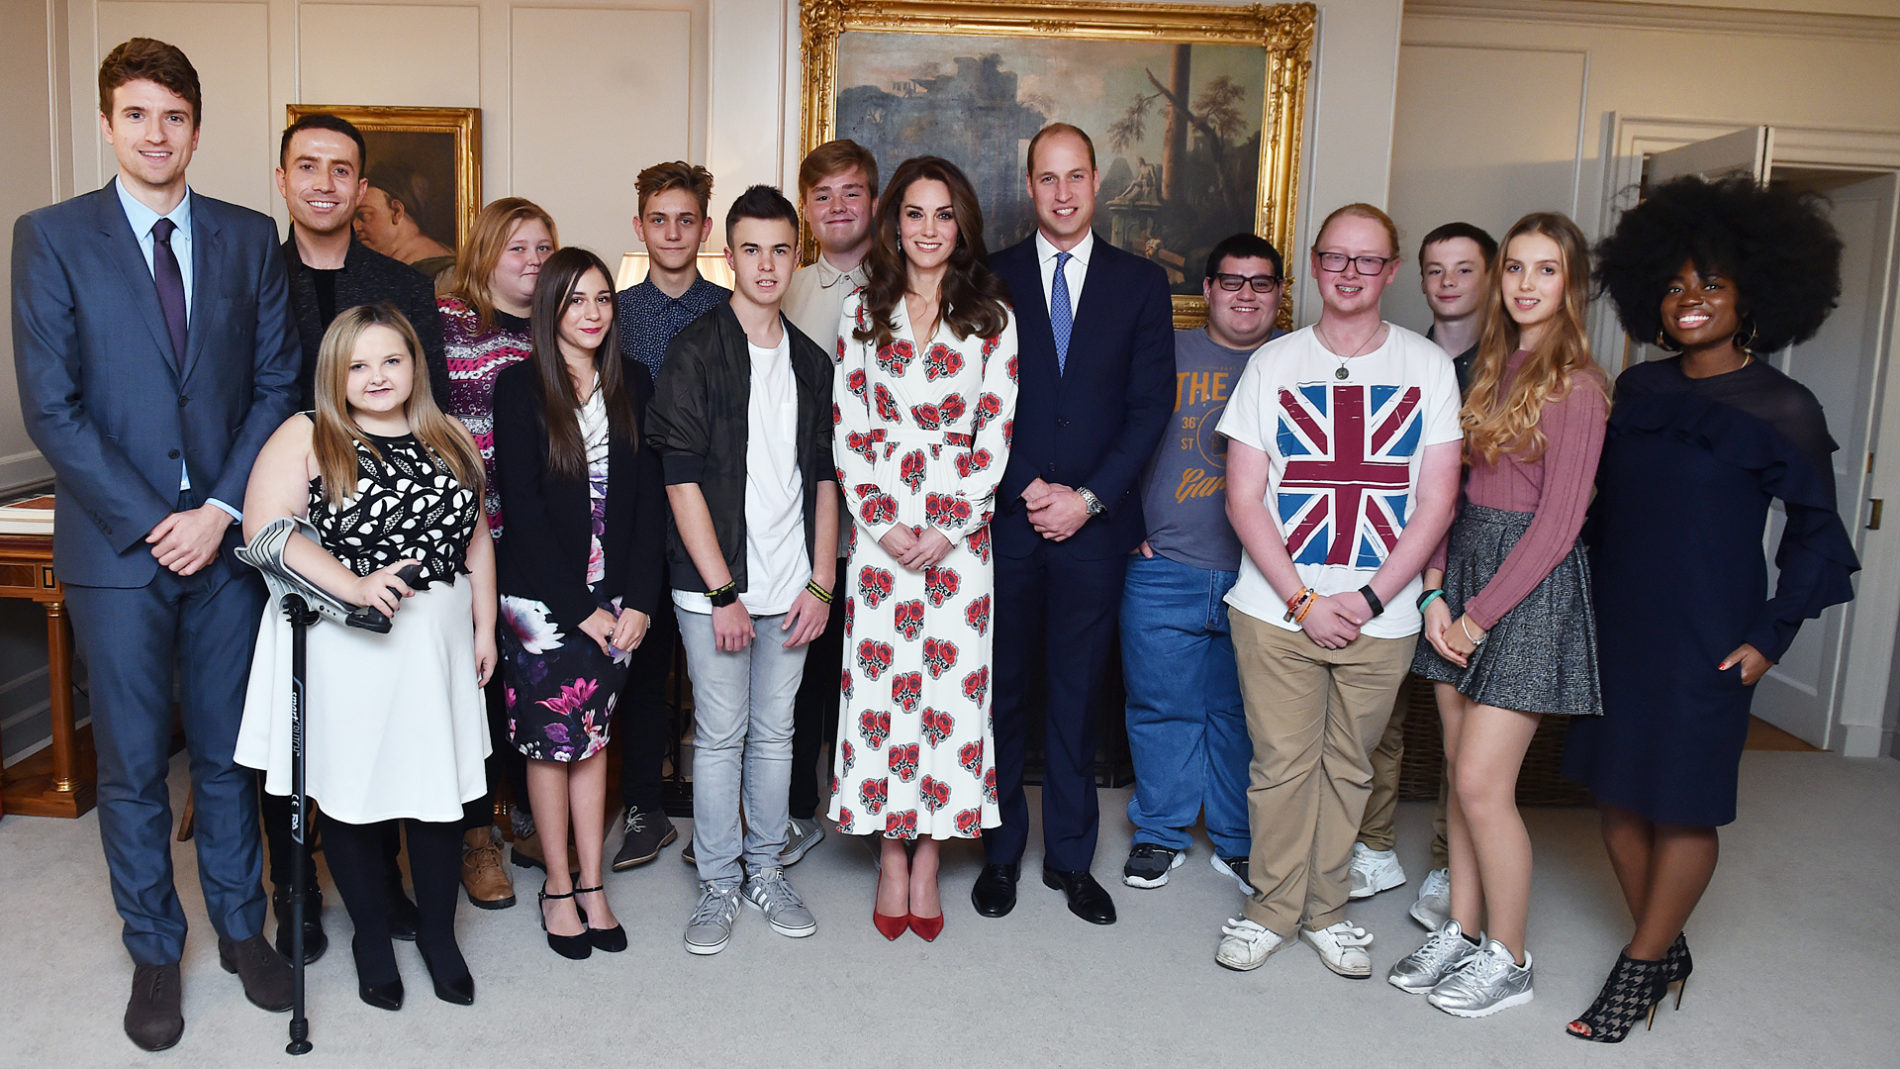 BBC Radio 1 Teen Heroes at Kensington Palace with Clara Amfo, Greg James, Nick Grimshaw, HRH Duke and Duchess of Cambridge, 2016. Photographer: Sarah Jeynes. © BBC.